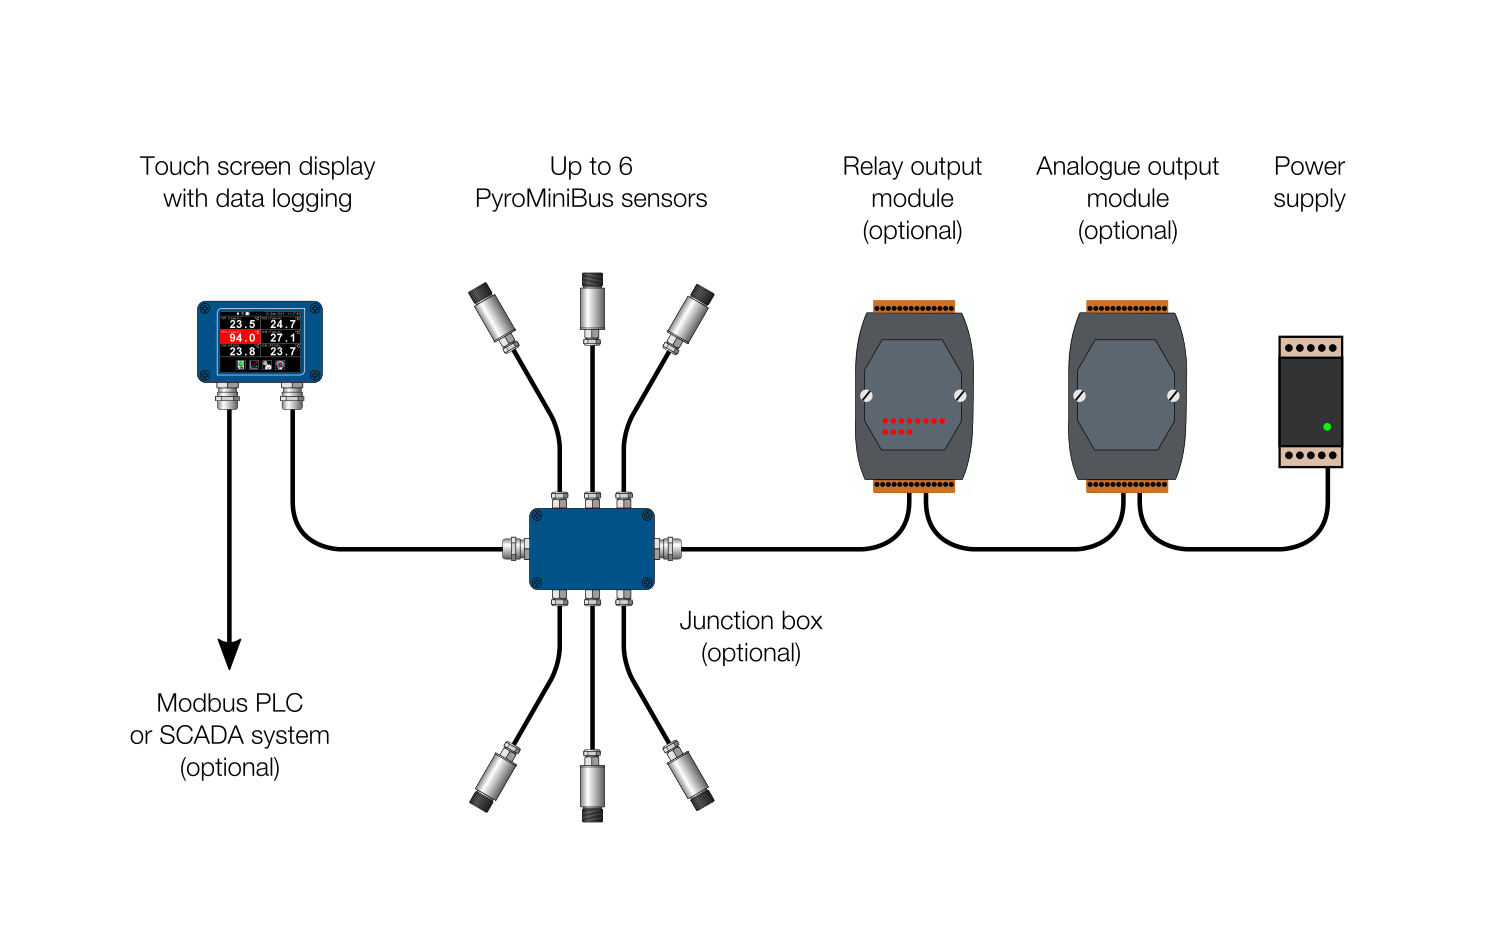 Pyrometer Simplifies Multi Point Temperature Monitoring Engineer Live Circuit System Of Infrared Sensors And Interface Modules Designed To Make Industrial Easier More Affordable